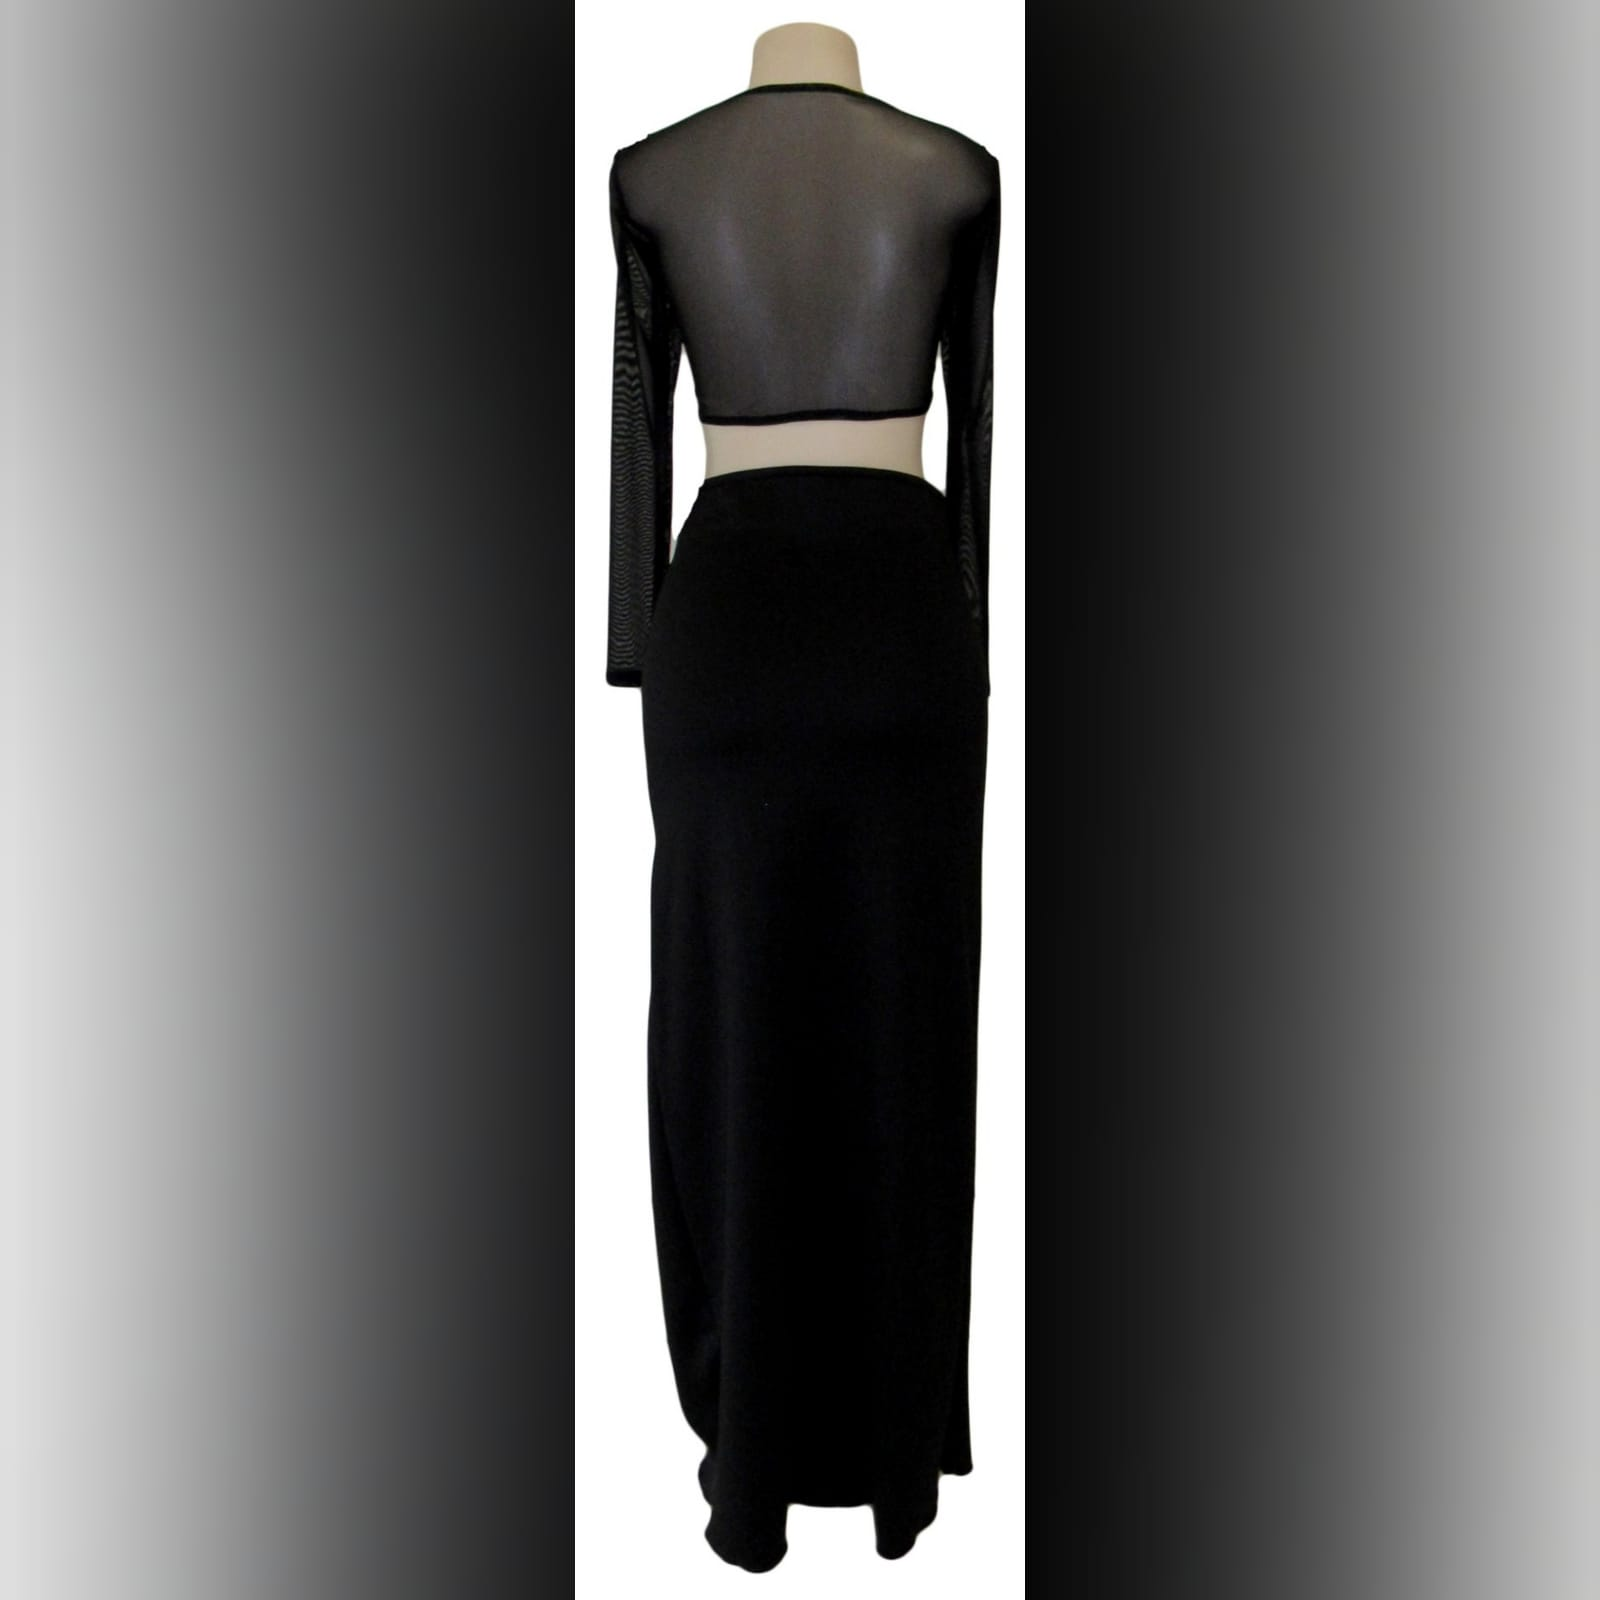 Black 2 piece smart casual dress 6 black 2 piece smart casual dress, with a crop top with long mesh sleeves, with a pencil long skirt with a slit